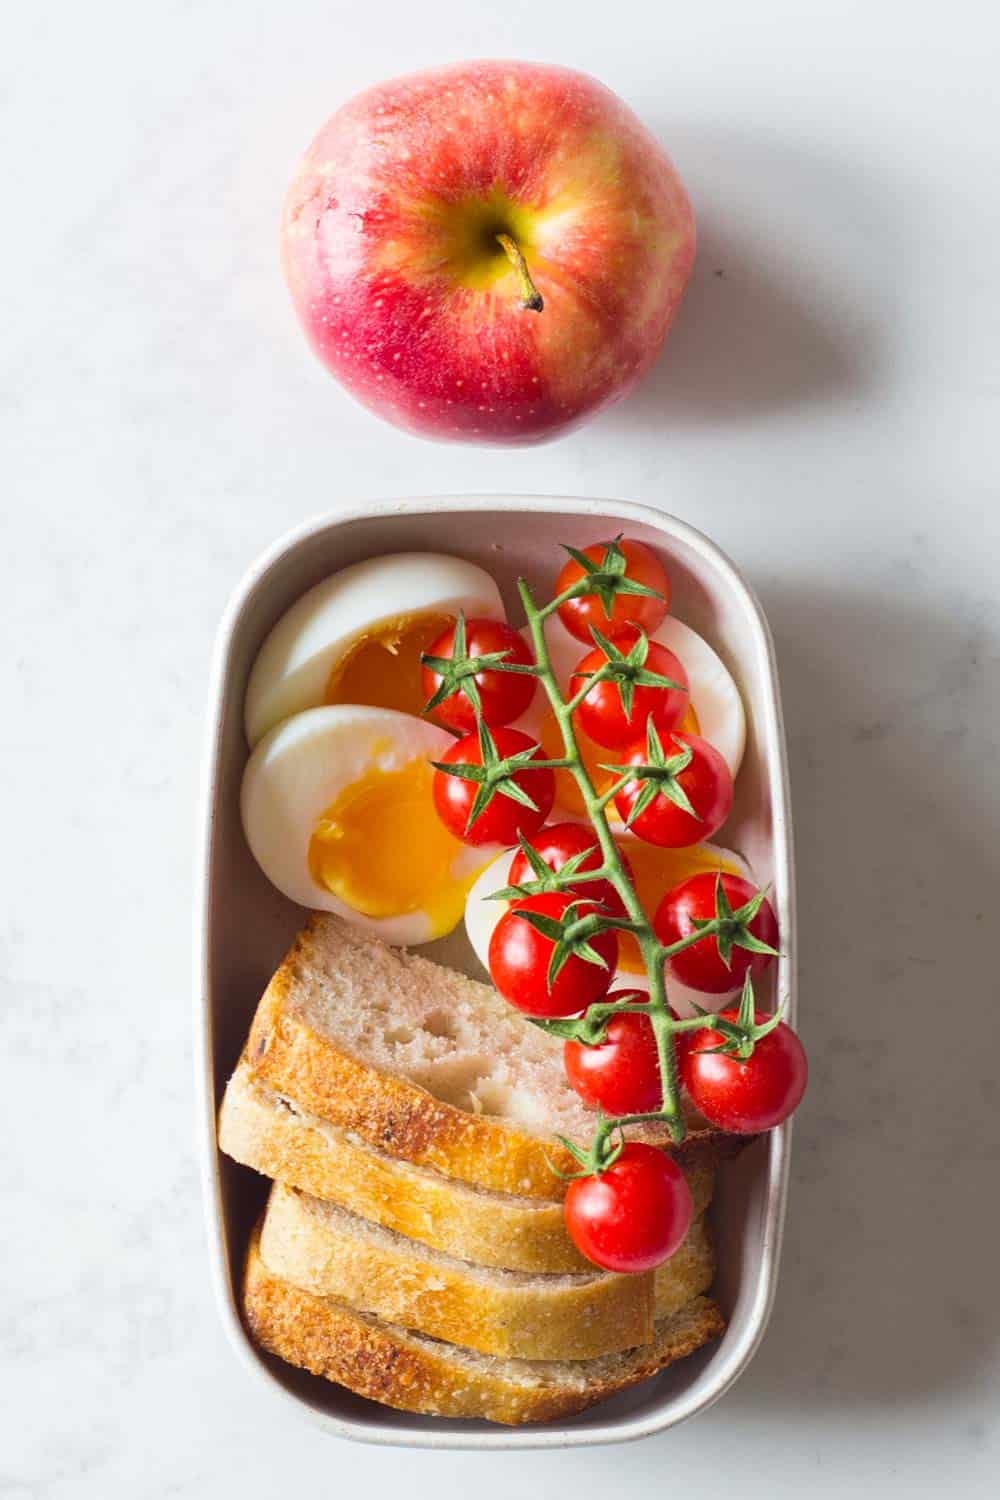 Clean Eating Breakfast for a Clean Eating Meal Plan - soft boiled eggs, buttered sourdough bread, cherry tomatoes and an apple.